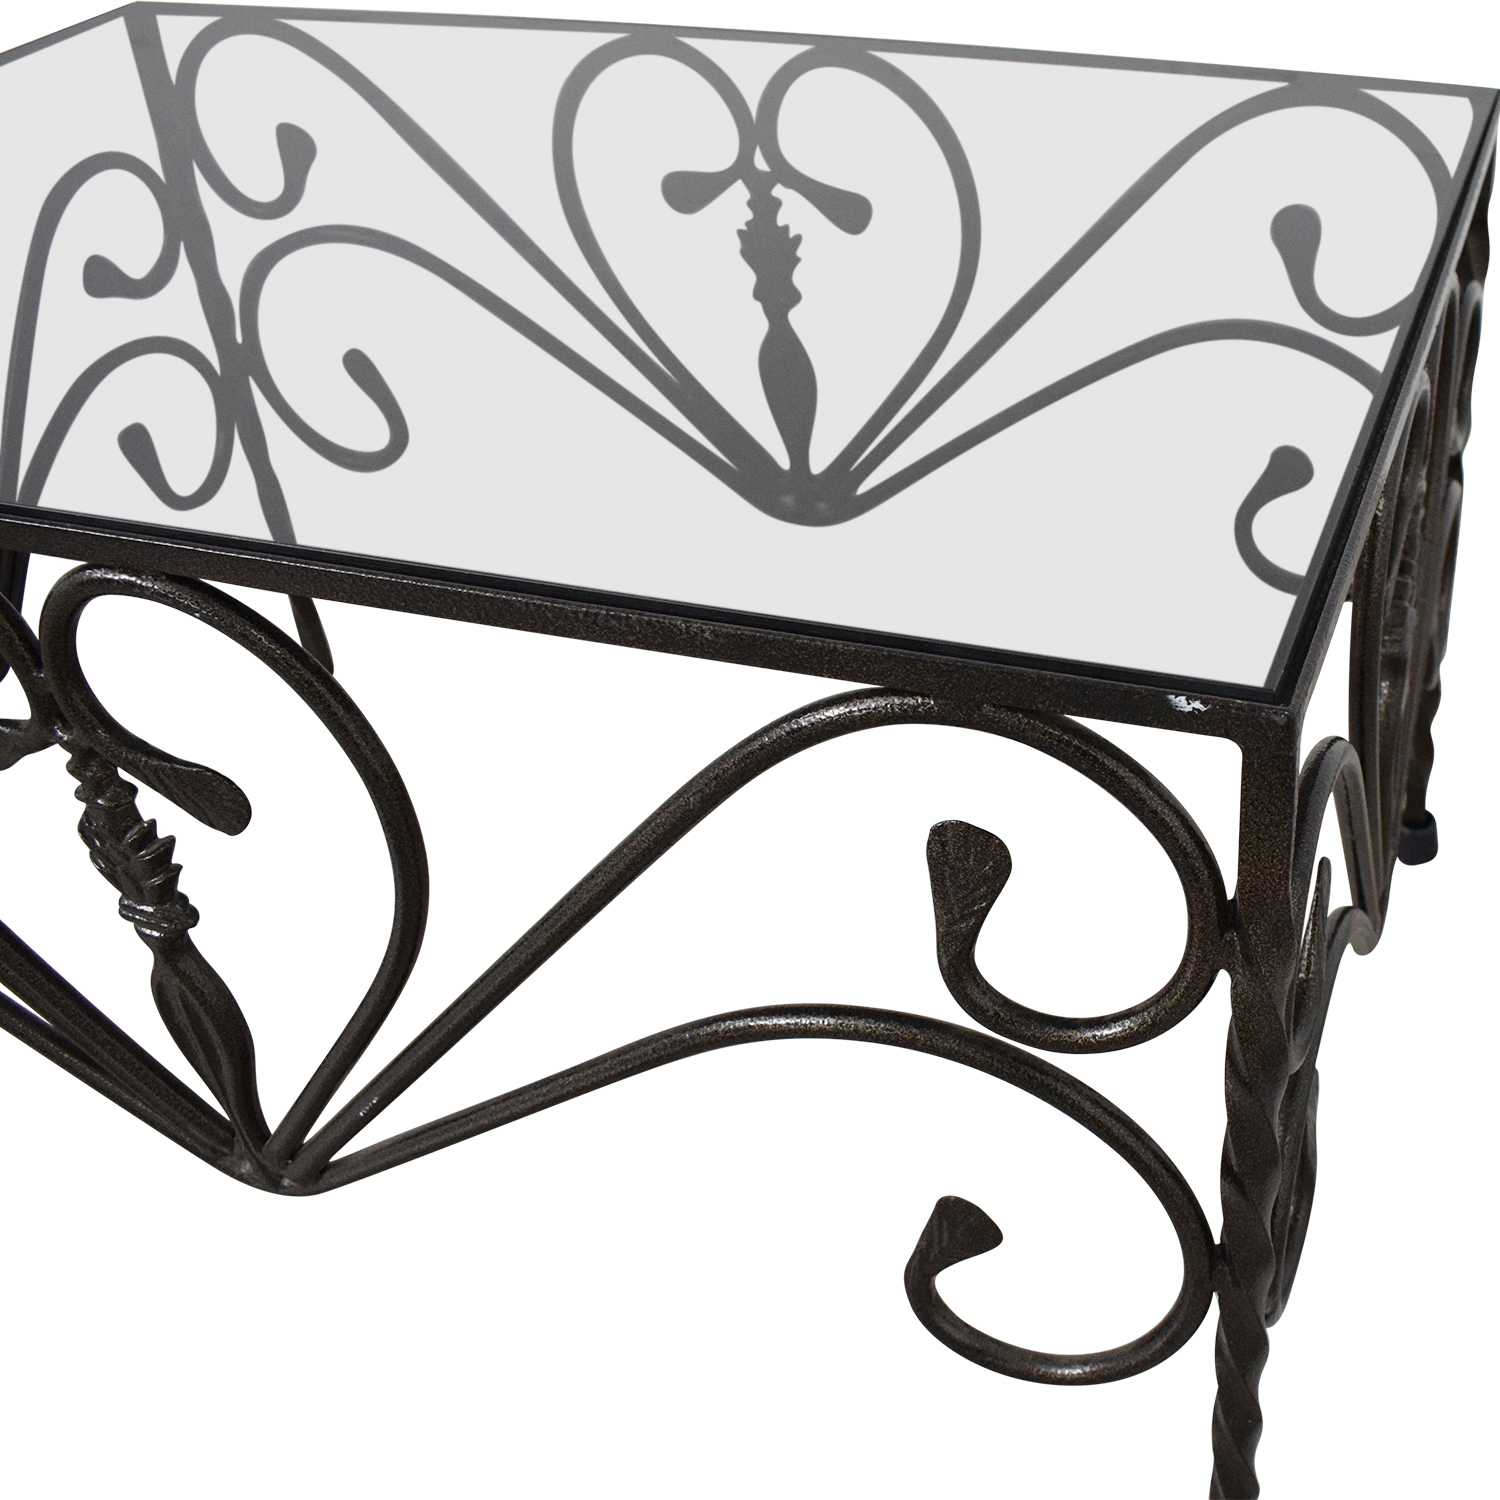 Custom Wrought Iron Table discount